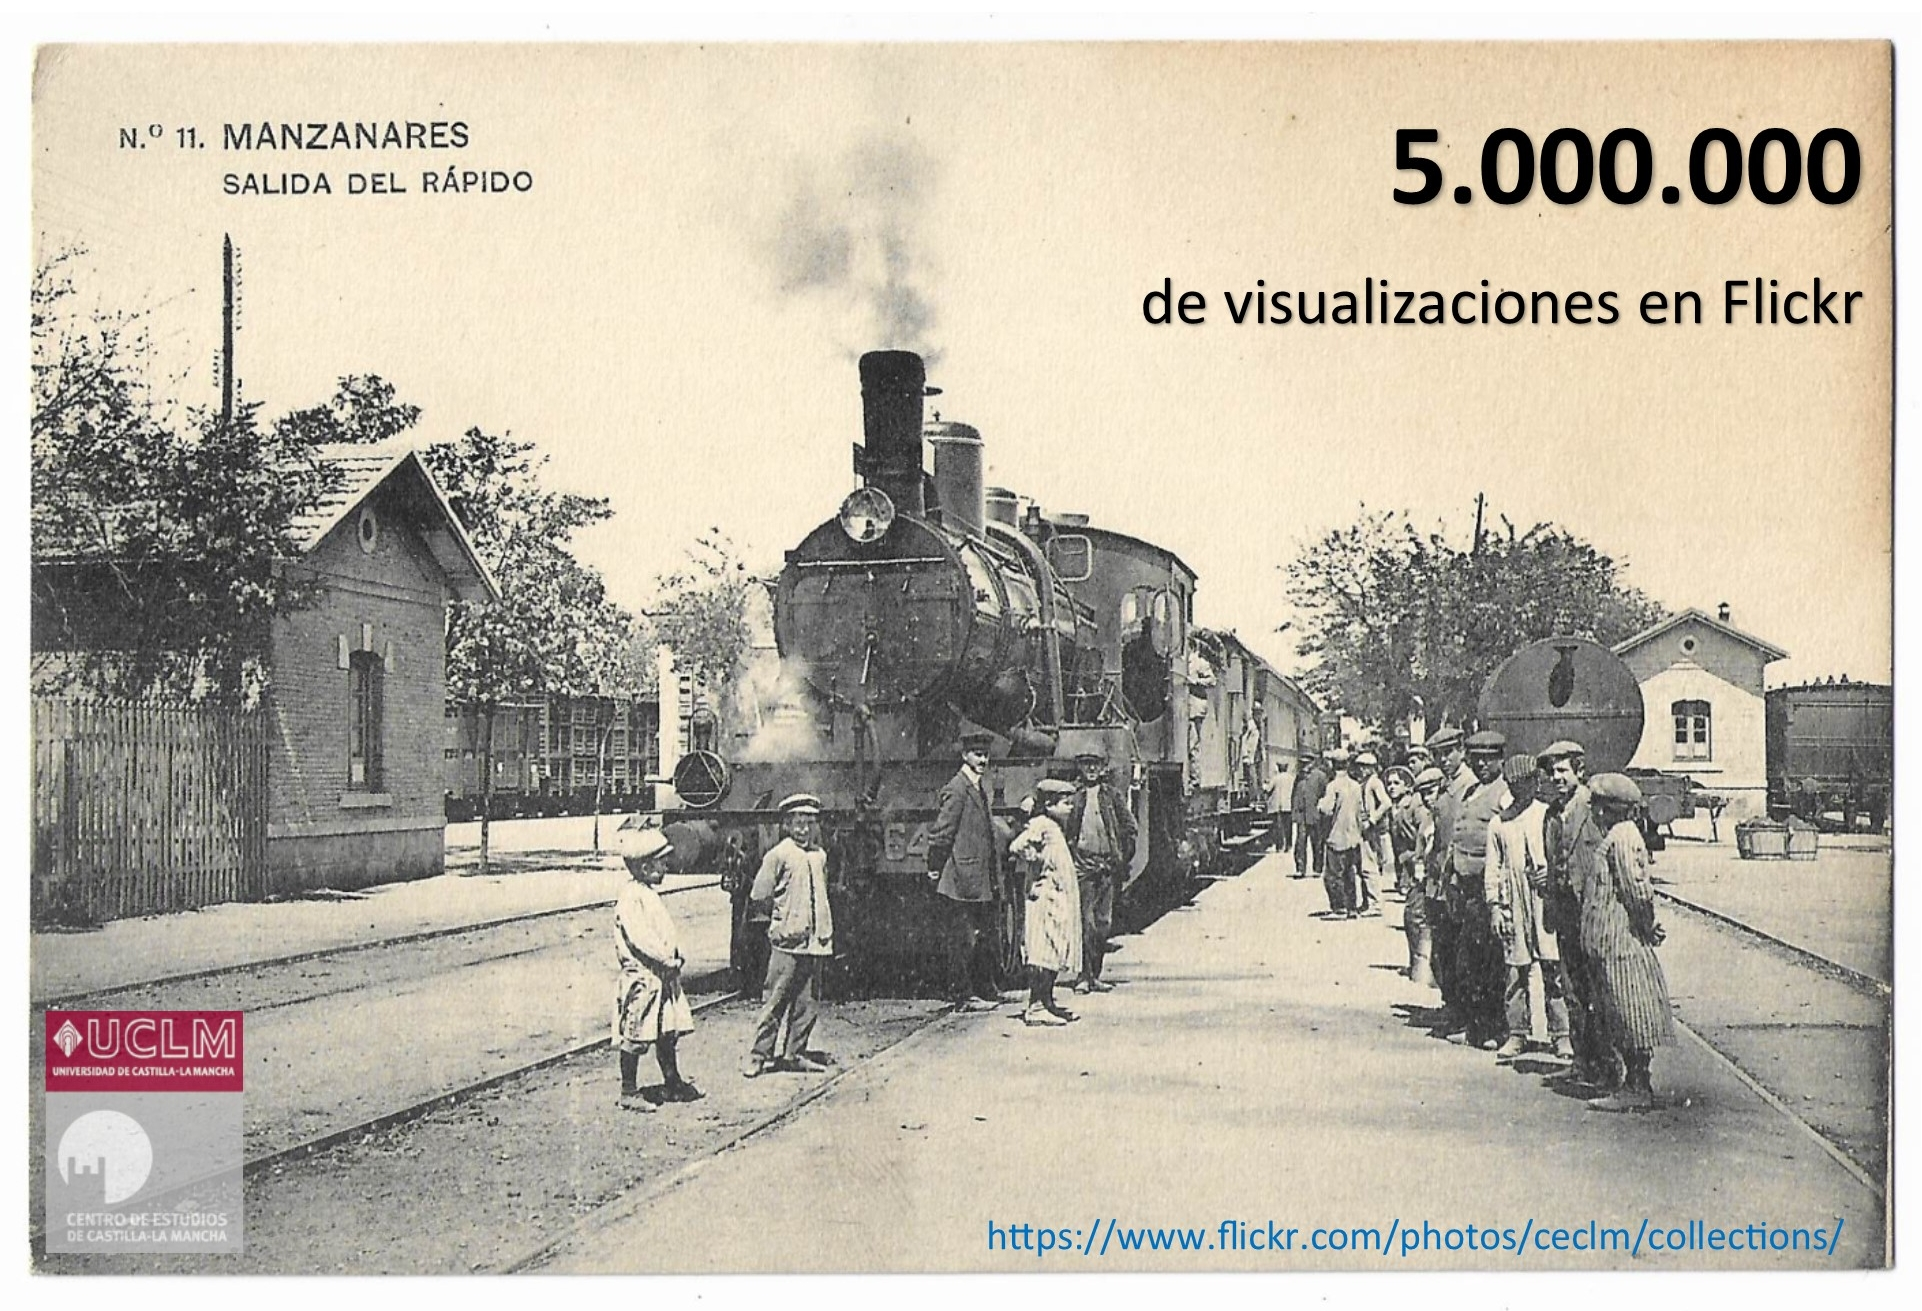 5 millones de visualizaciones en Flickr